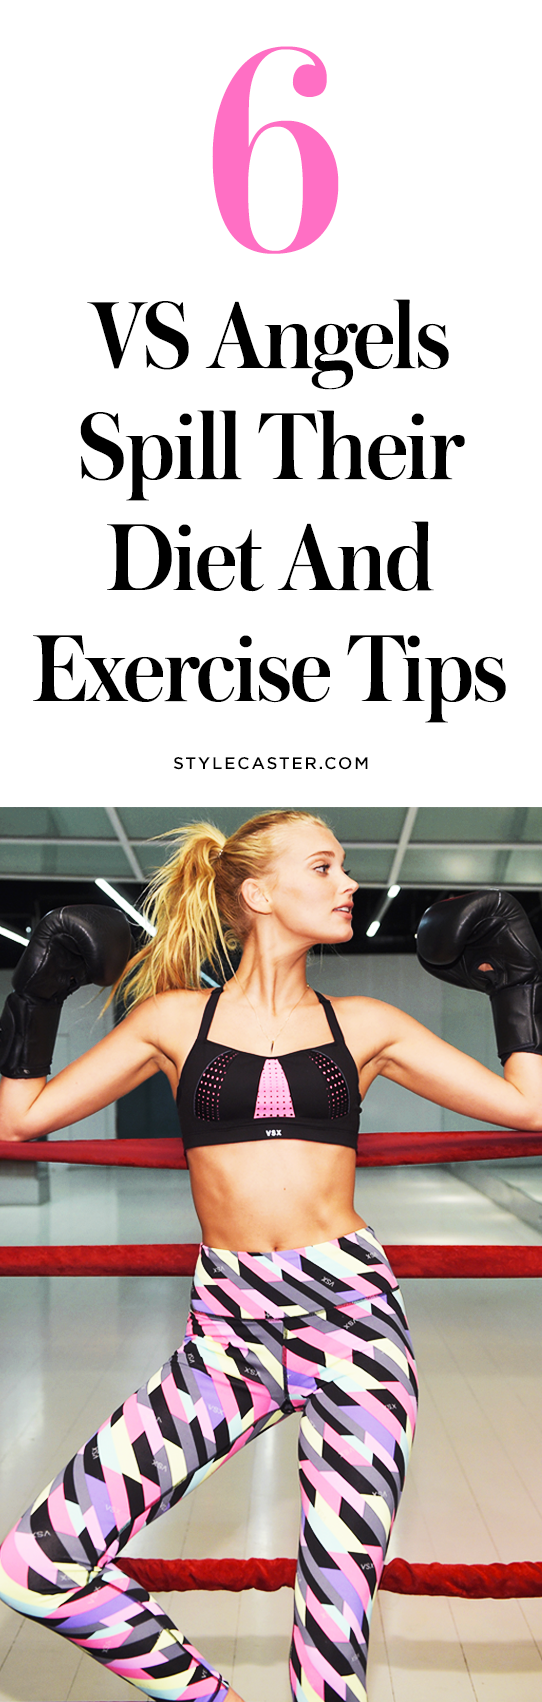 Diet and exercise tips from Victoria's Secret models | @stylecaster